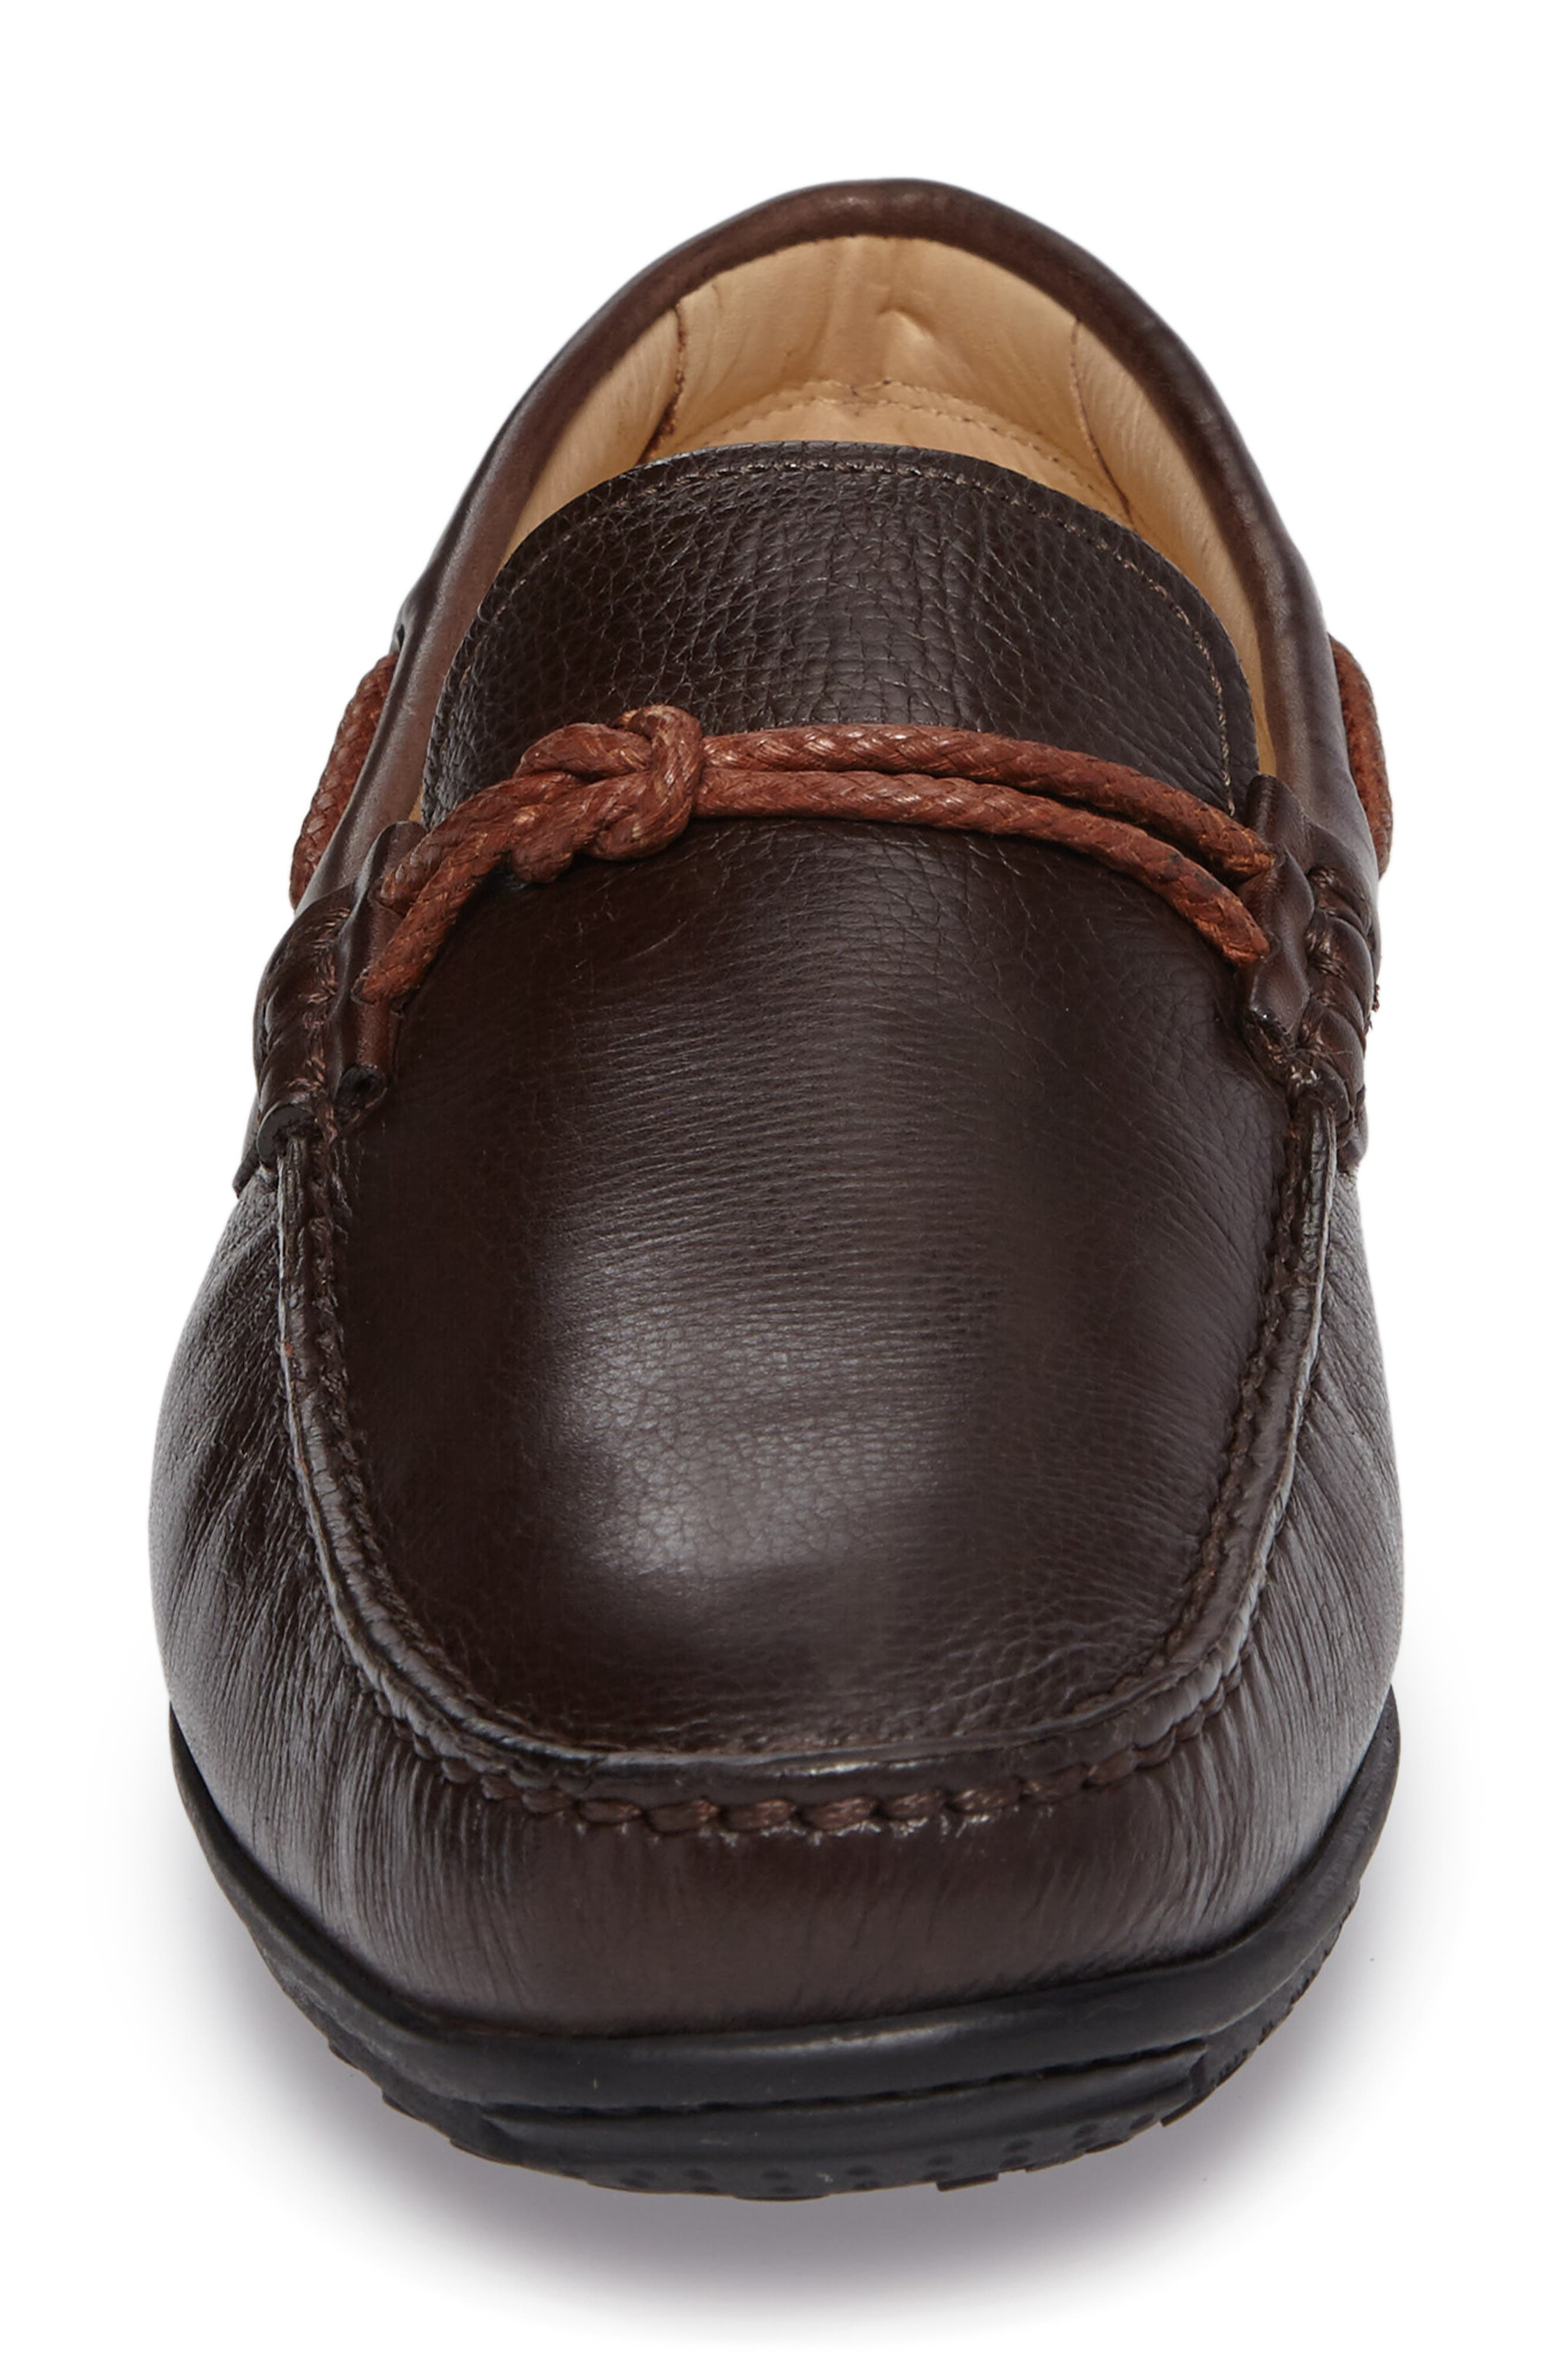 Itapira Driving Shoe,                             Alternate thumbnail 4, color,                             FLOATER/ TOUCH BROWN